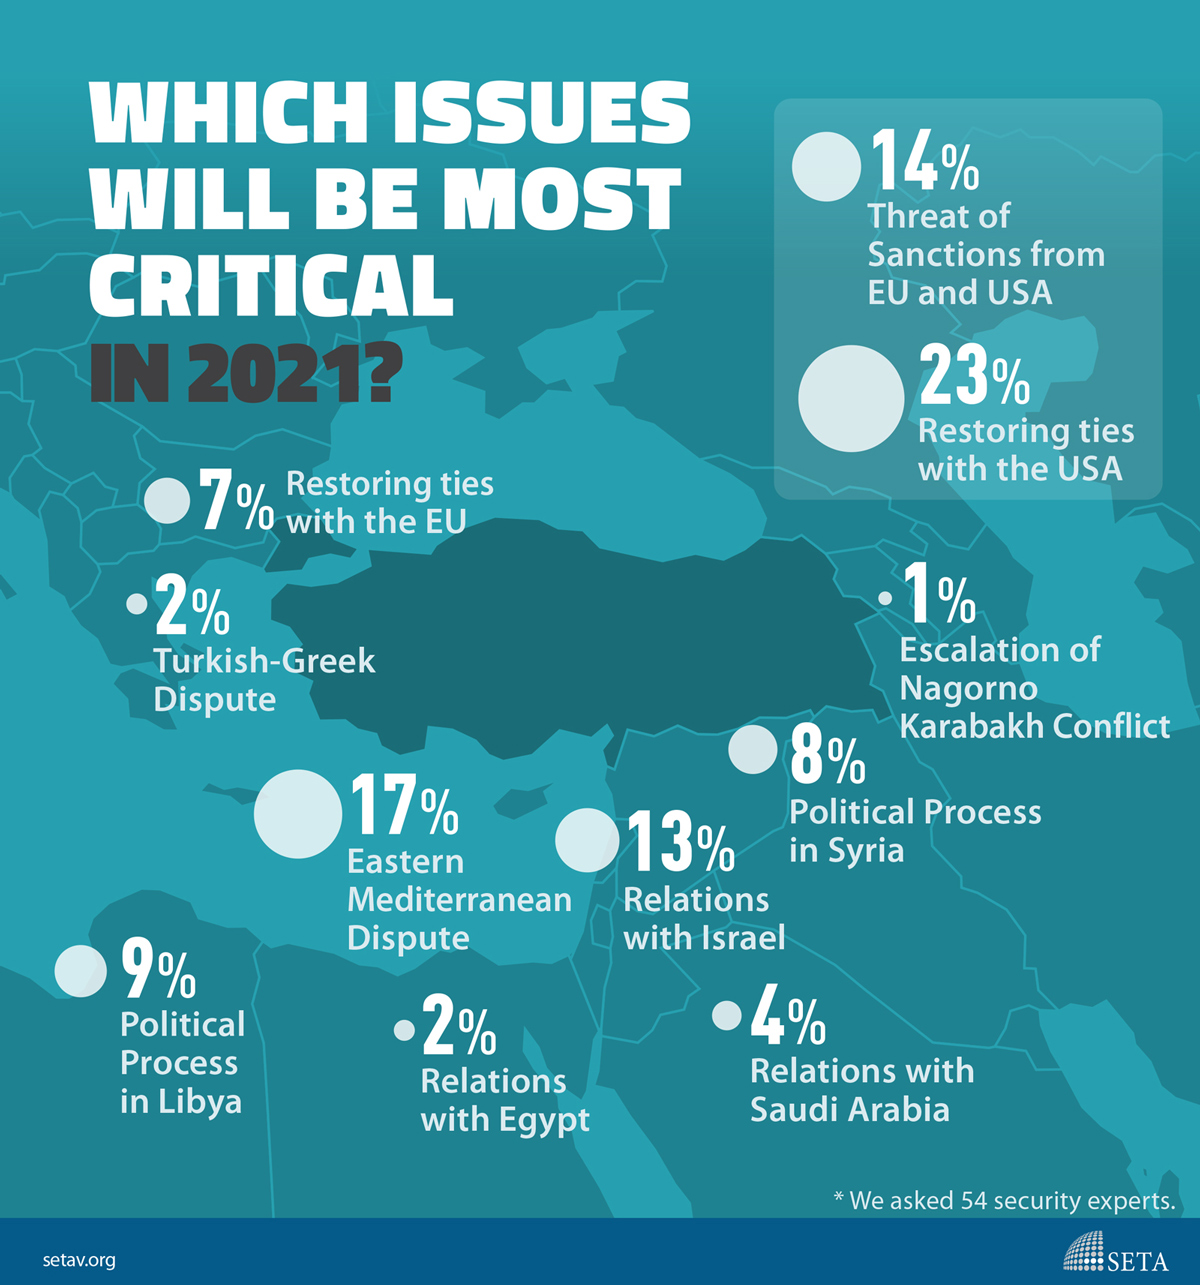 Infographic: Which Issues will be most critical in 2021?